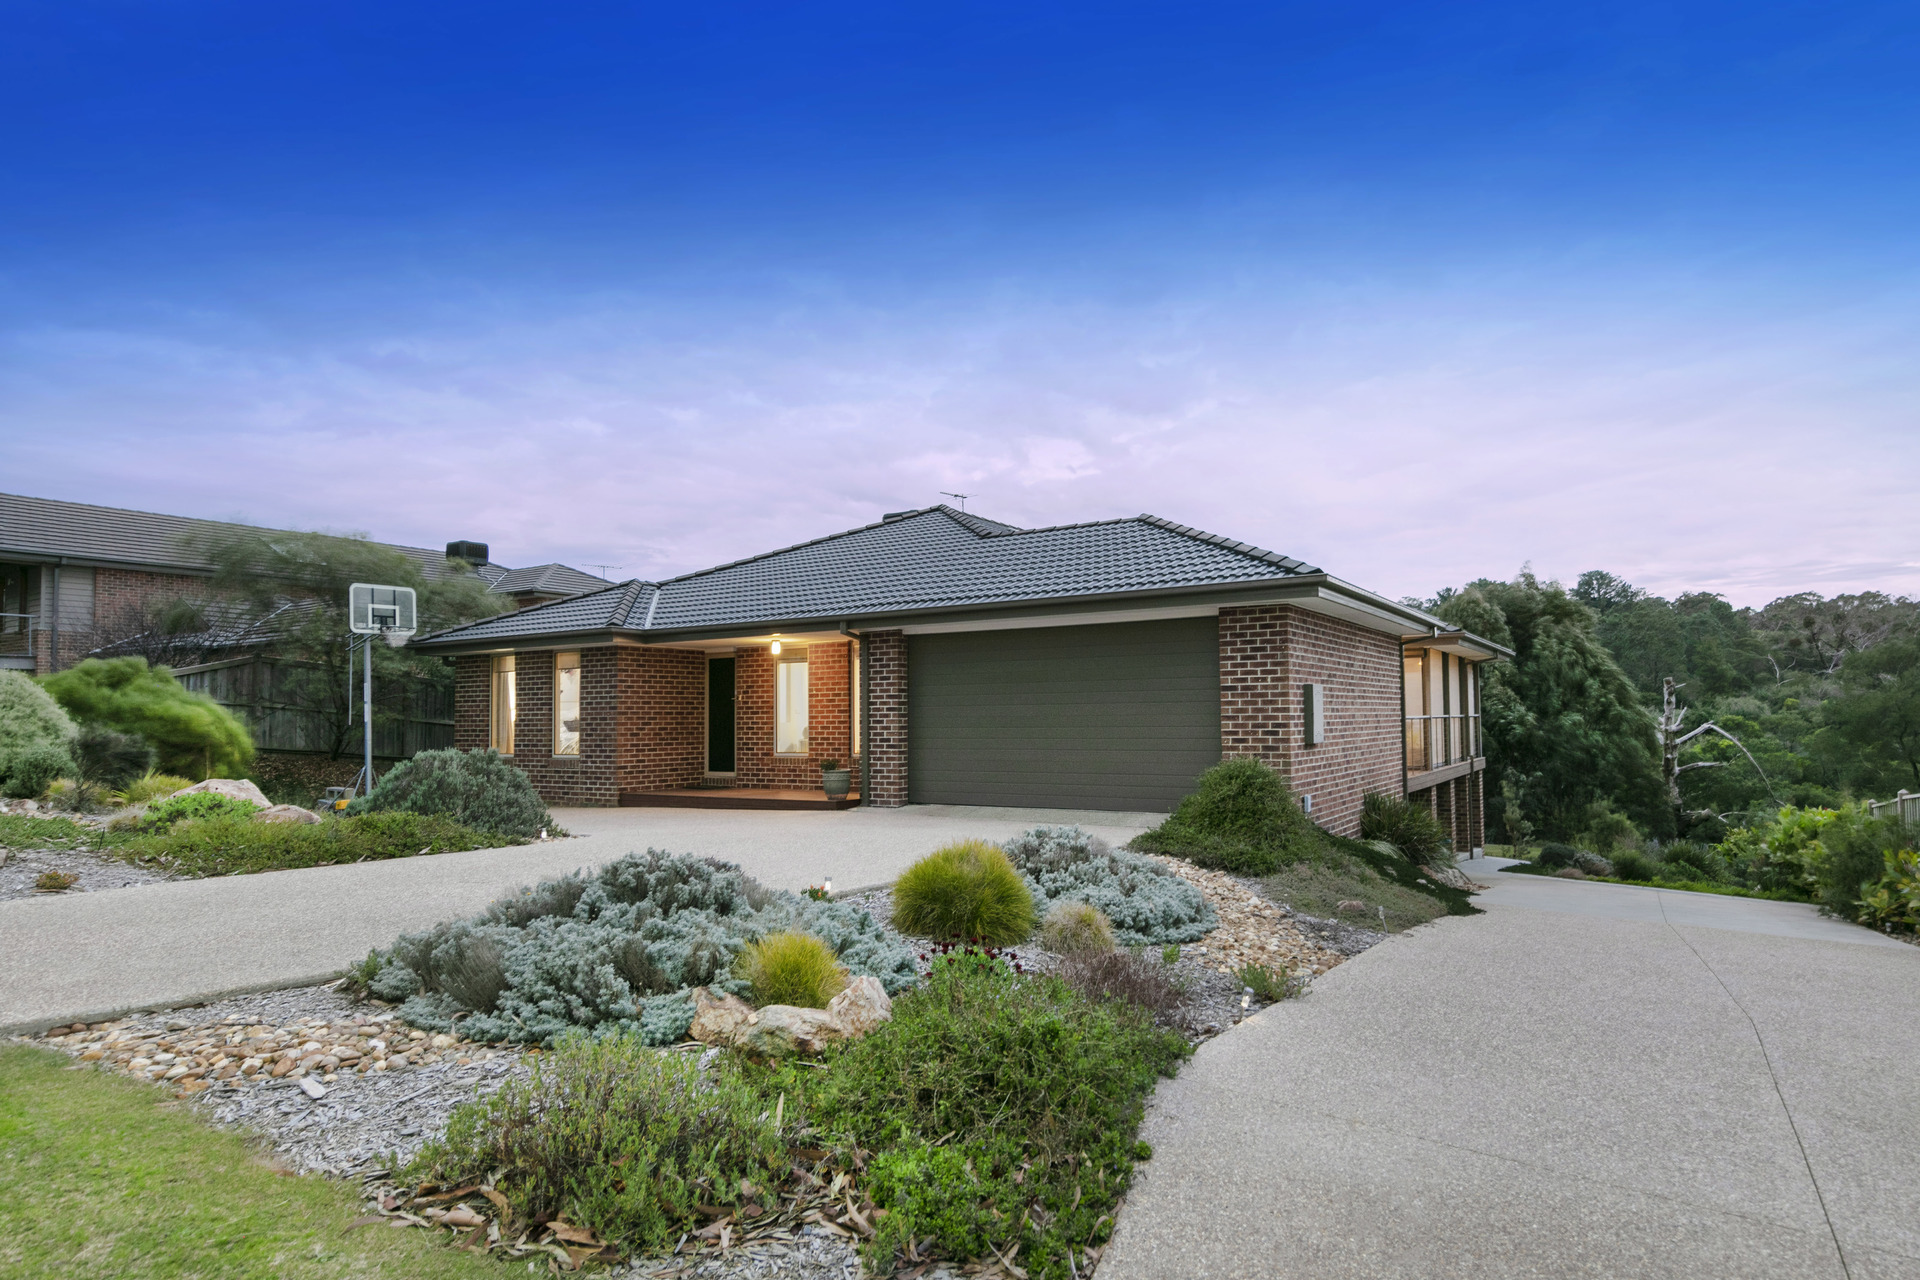 31 Waterview Drive, MOUNT MARTHA, VIC, 3934 - Image